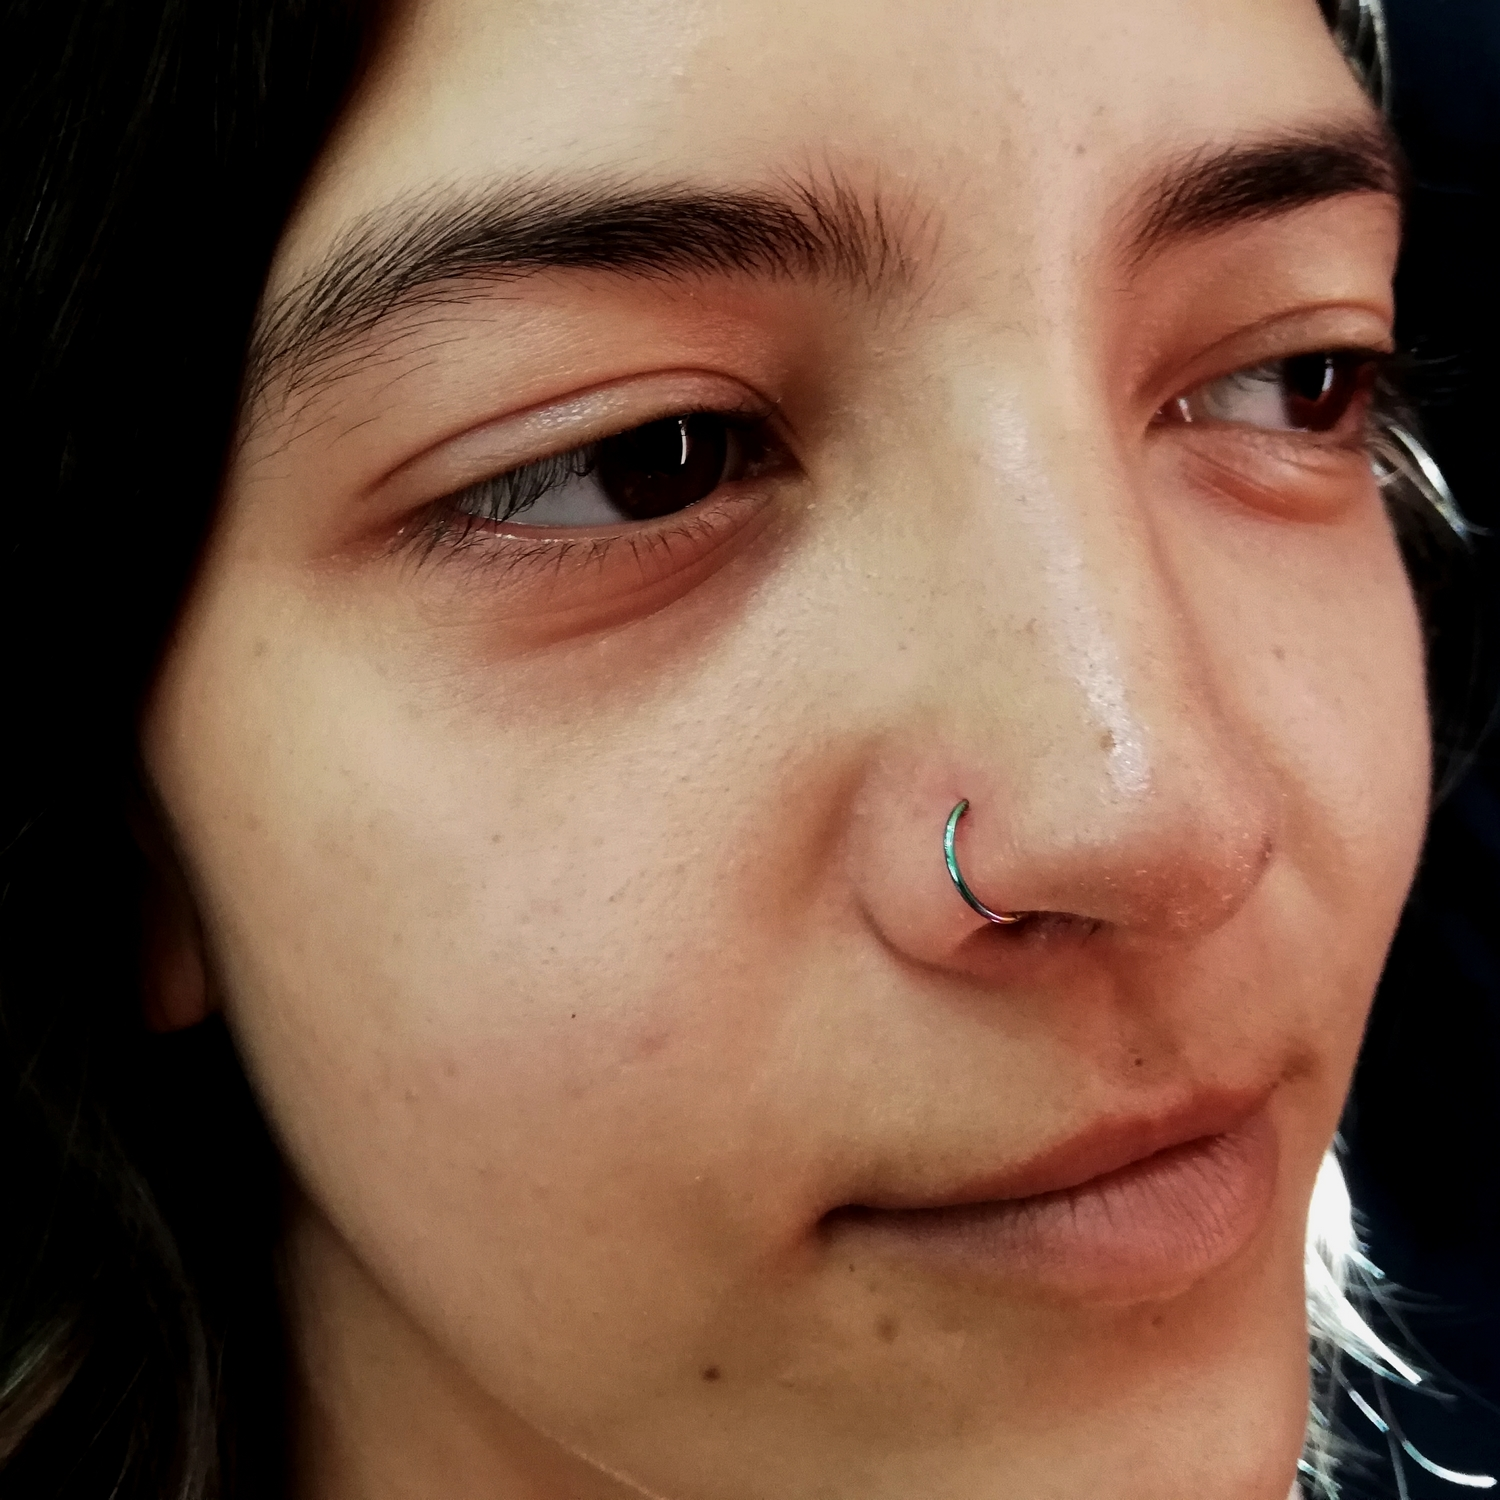 horseshoe,nose,piercing,besiktas